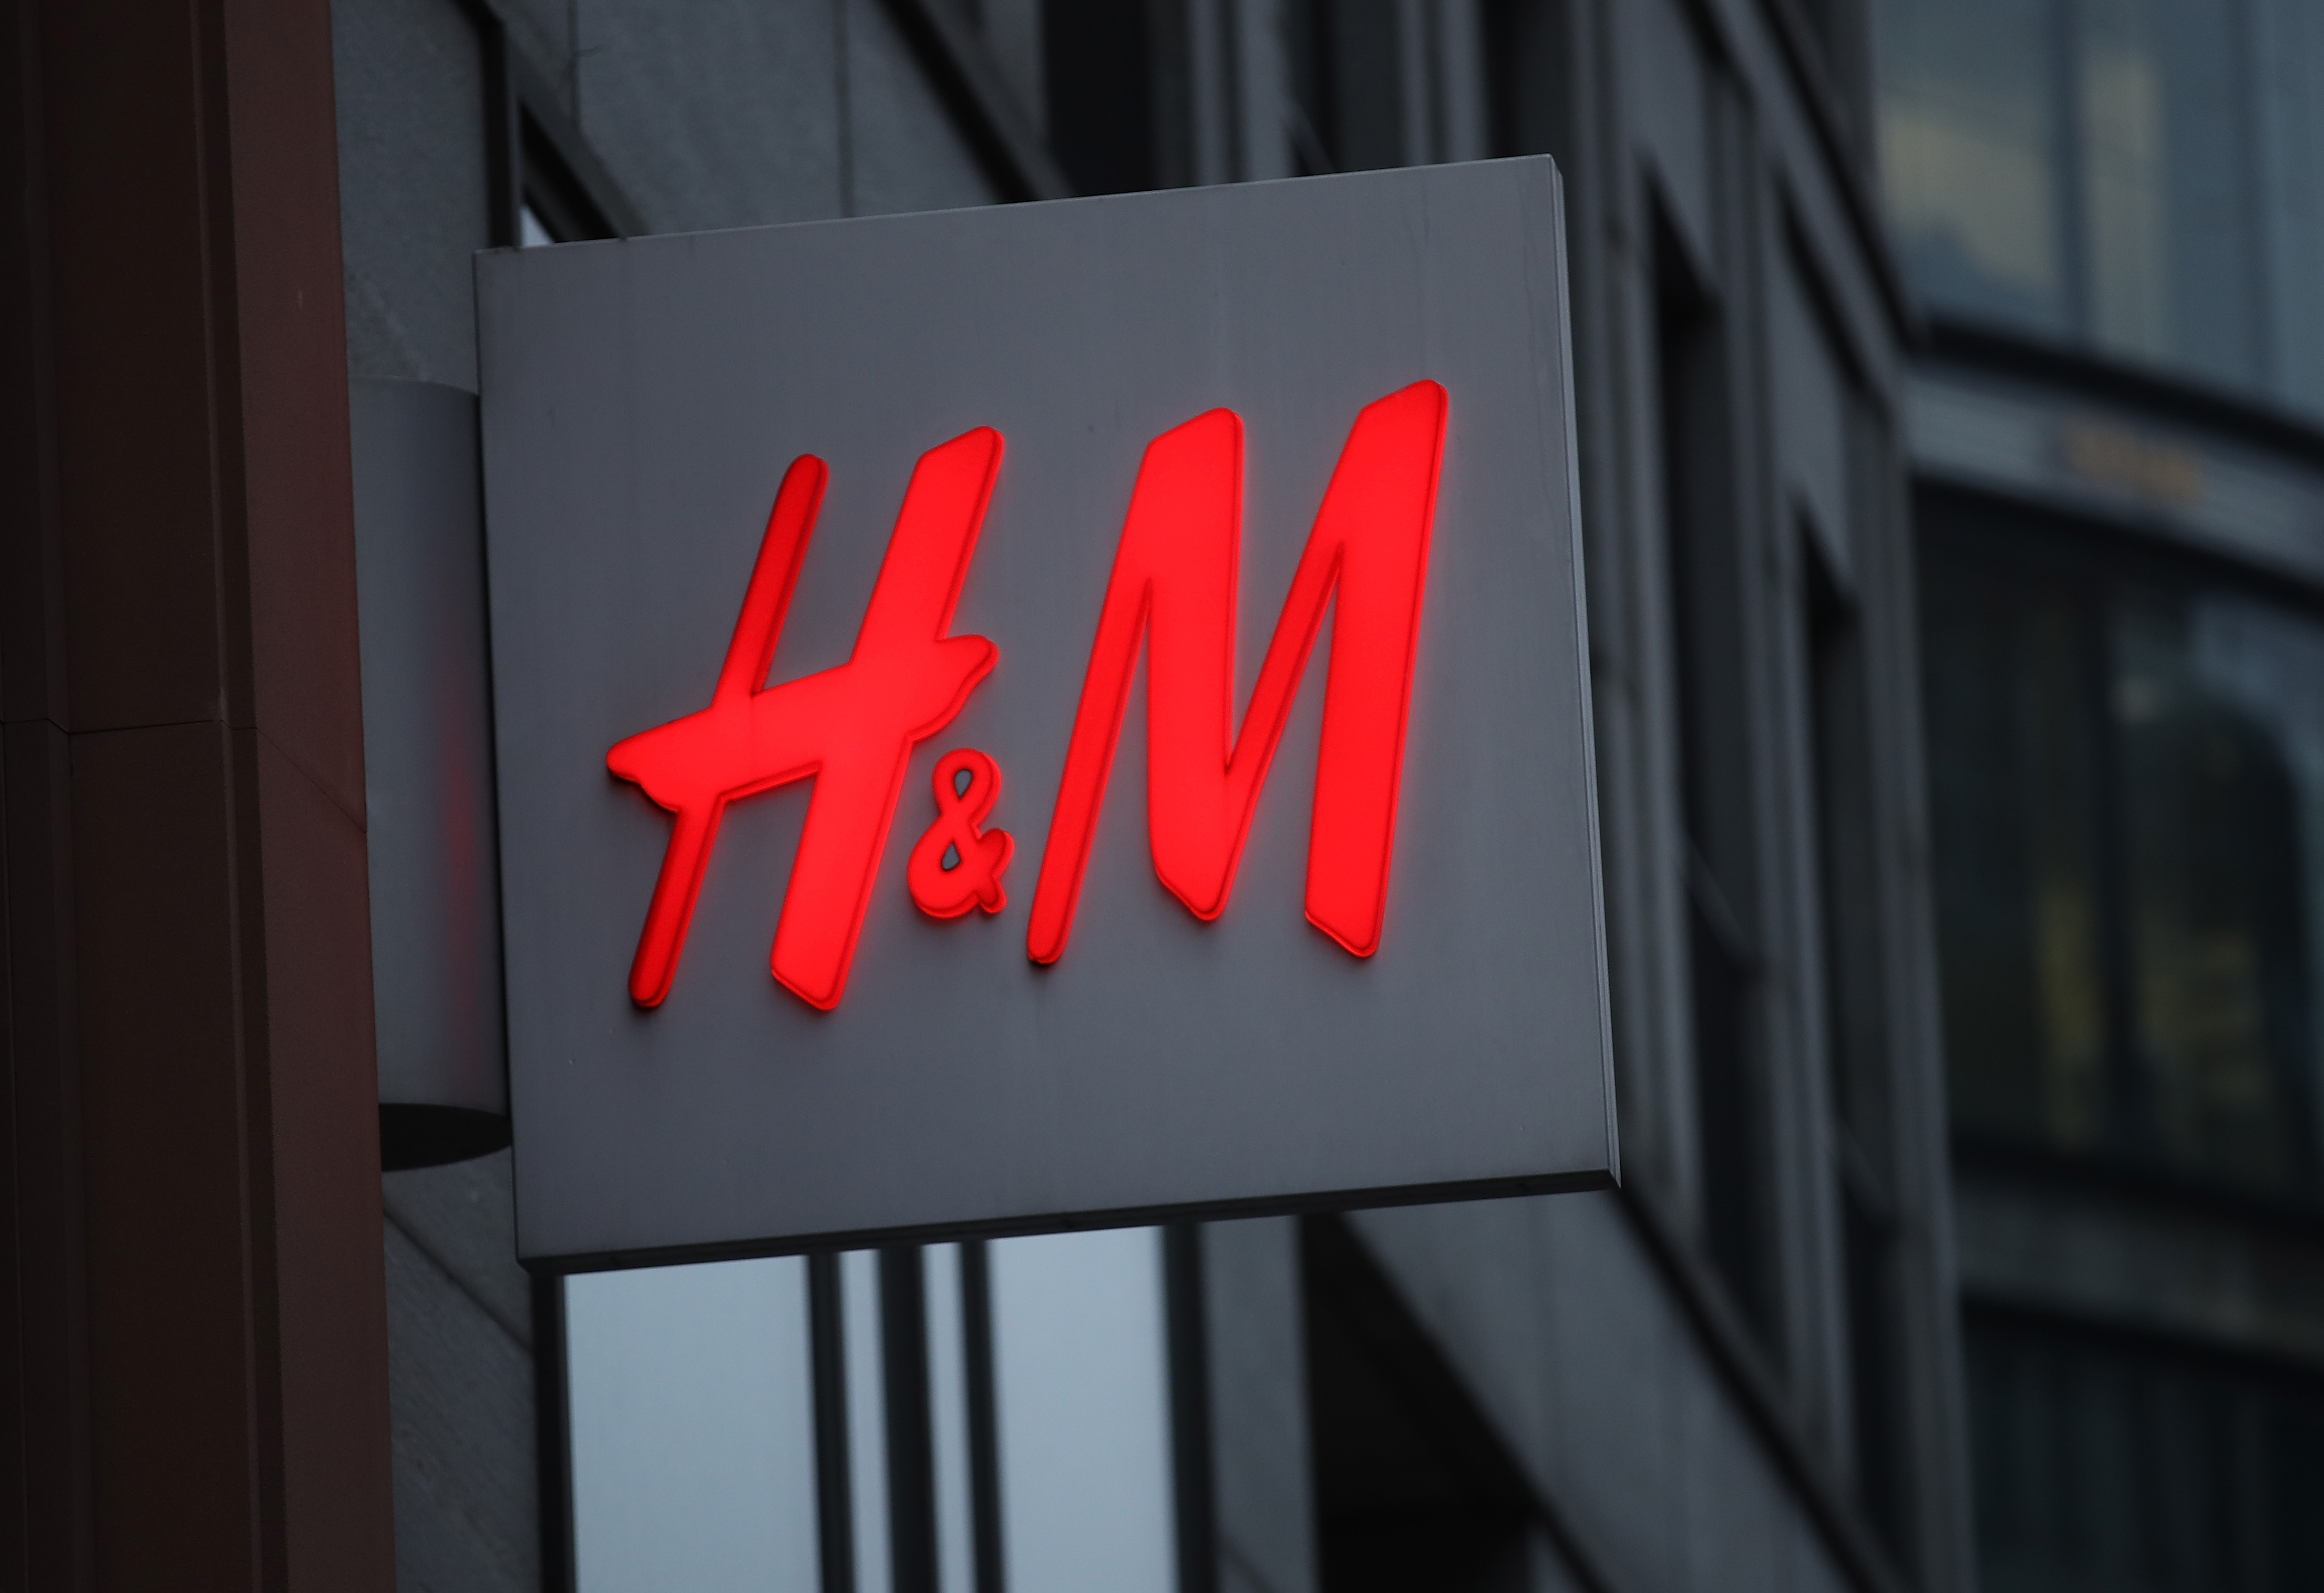 H&M responds to backlash